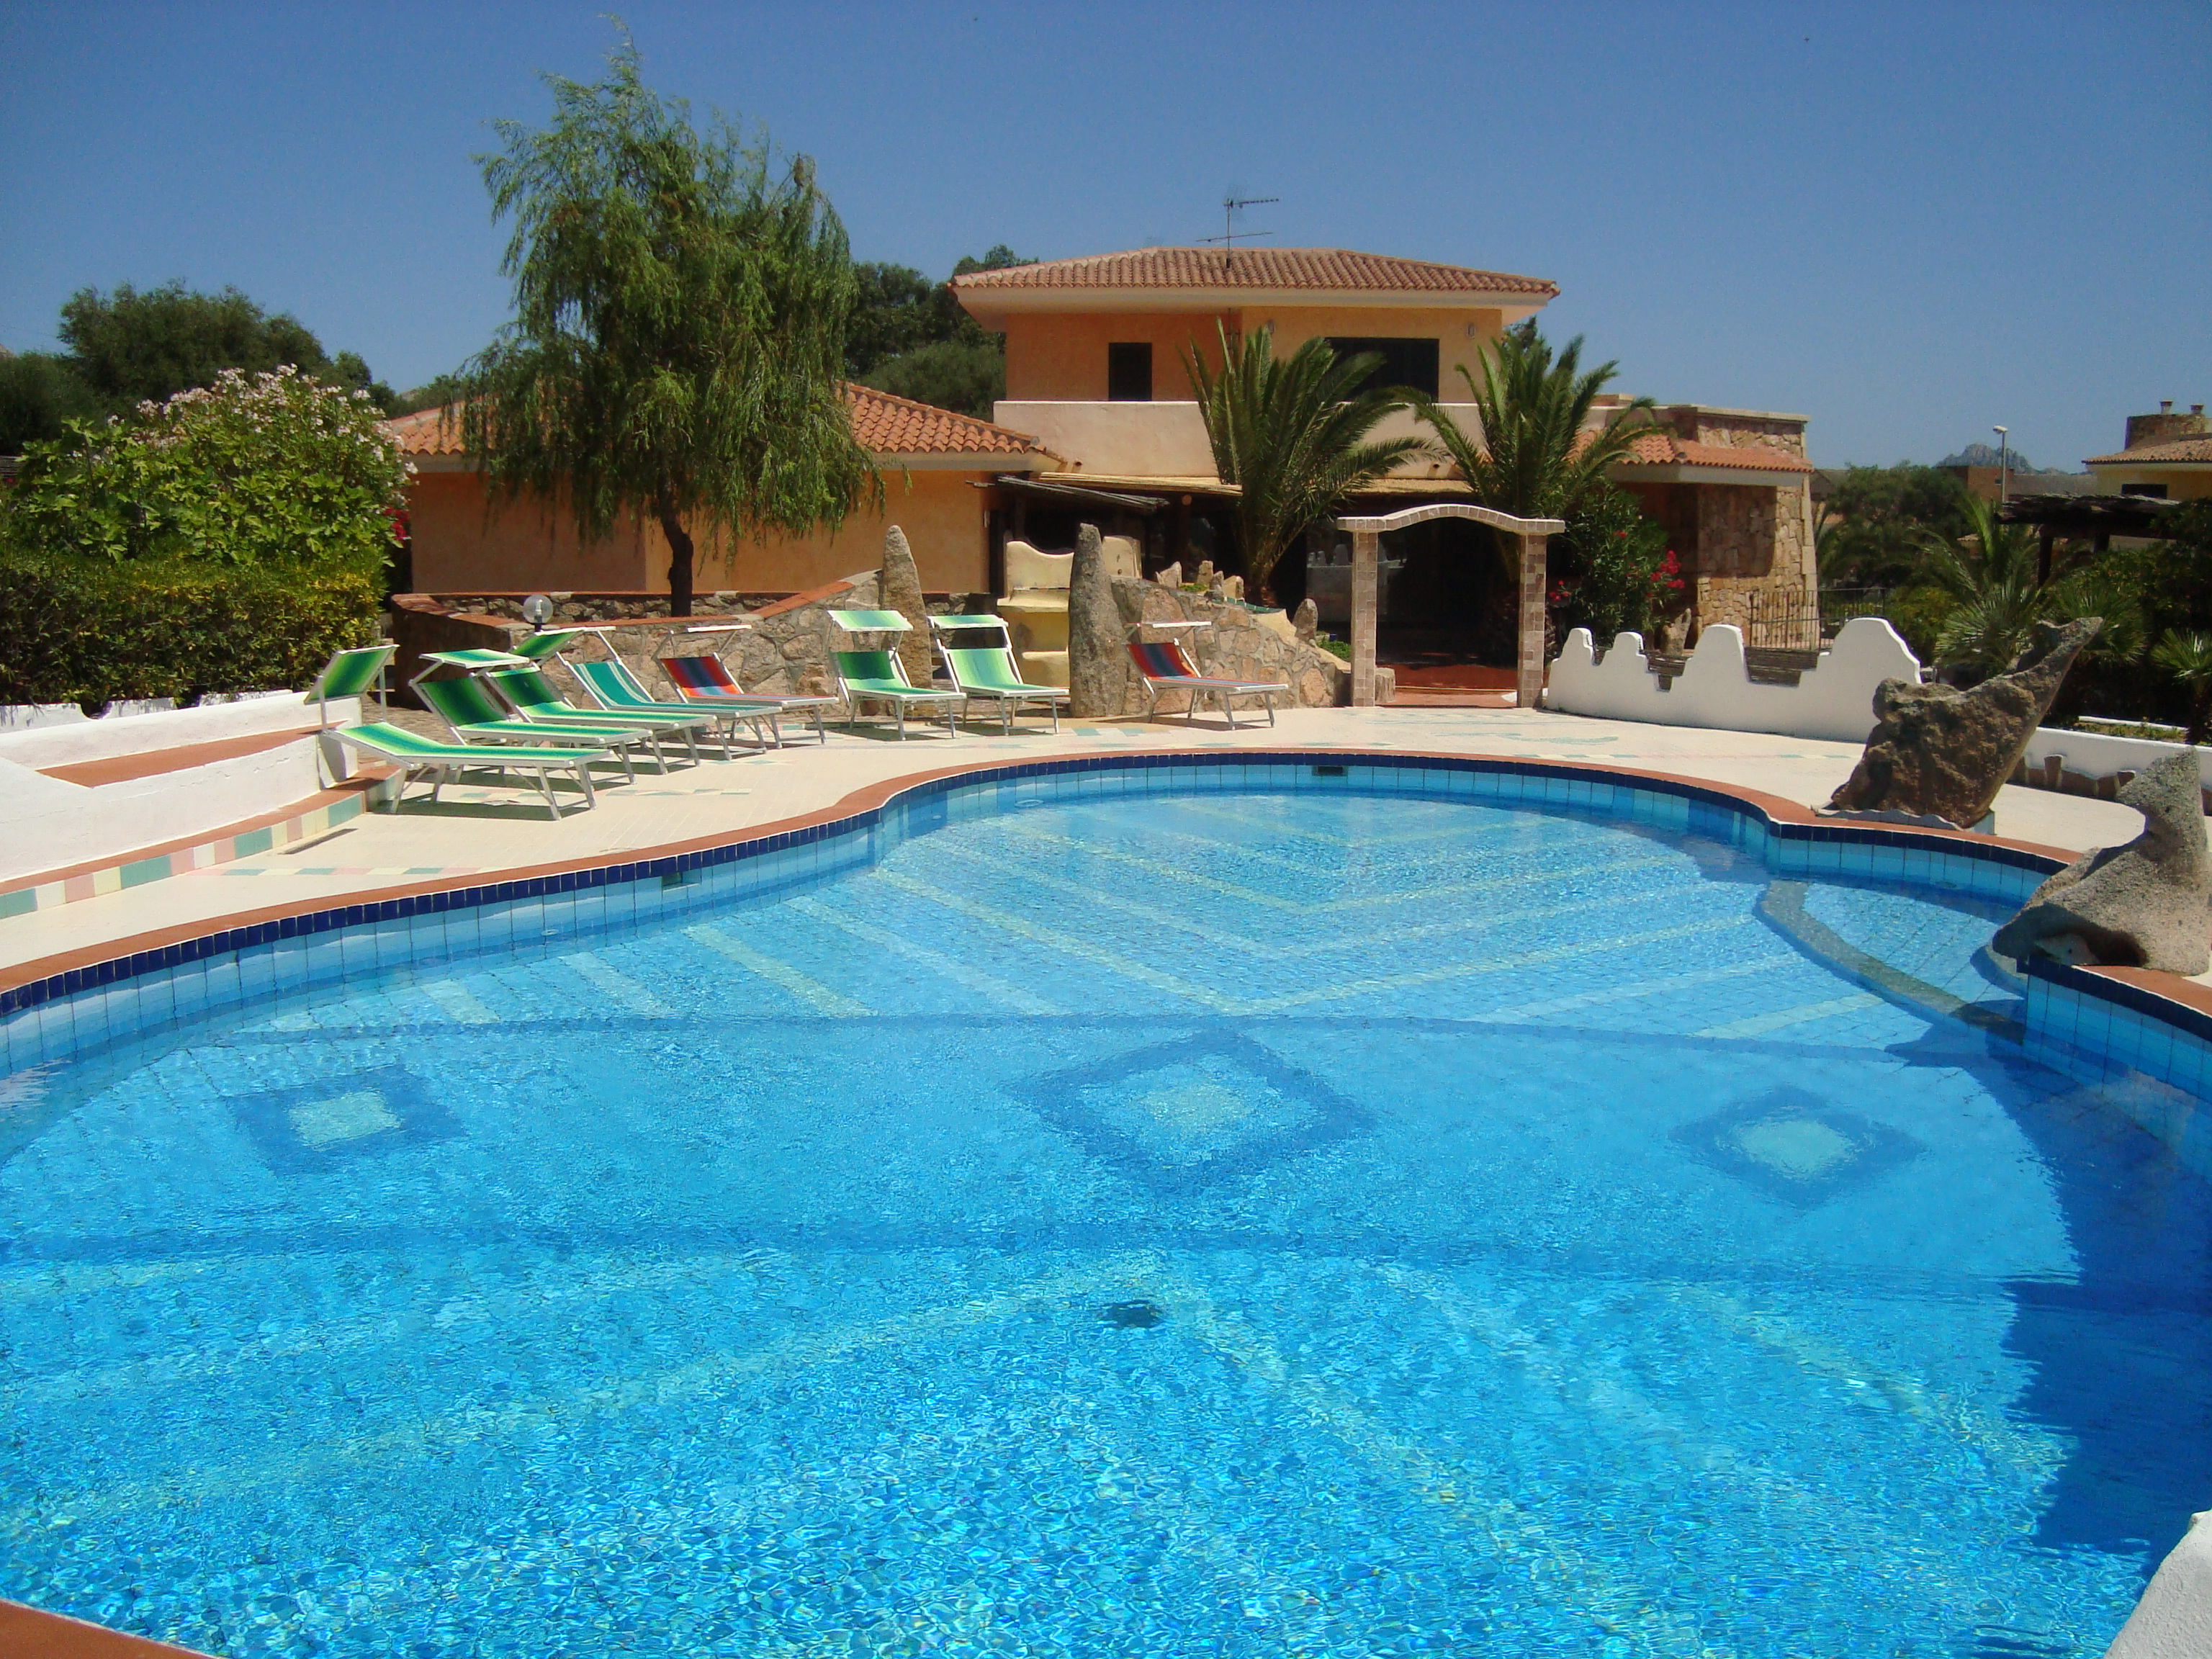 SardiniaLetting   Holidays Villas And Cottages In Sardinia (Italy)